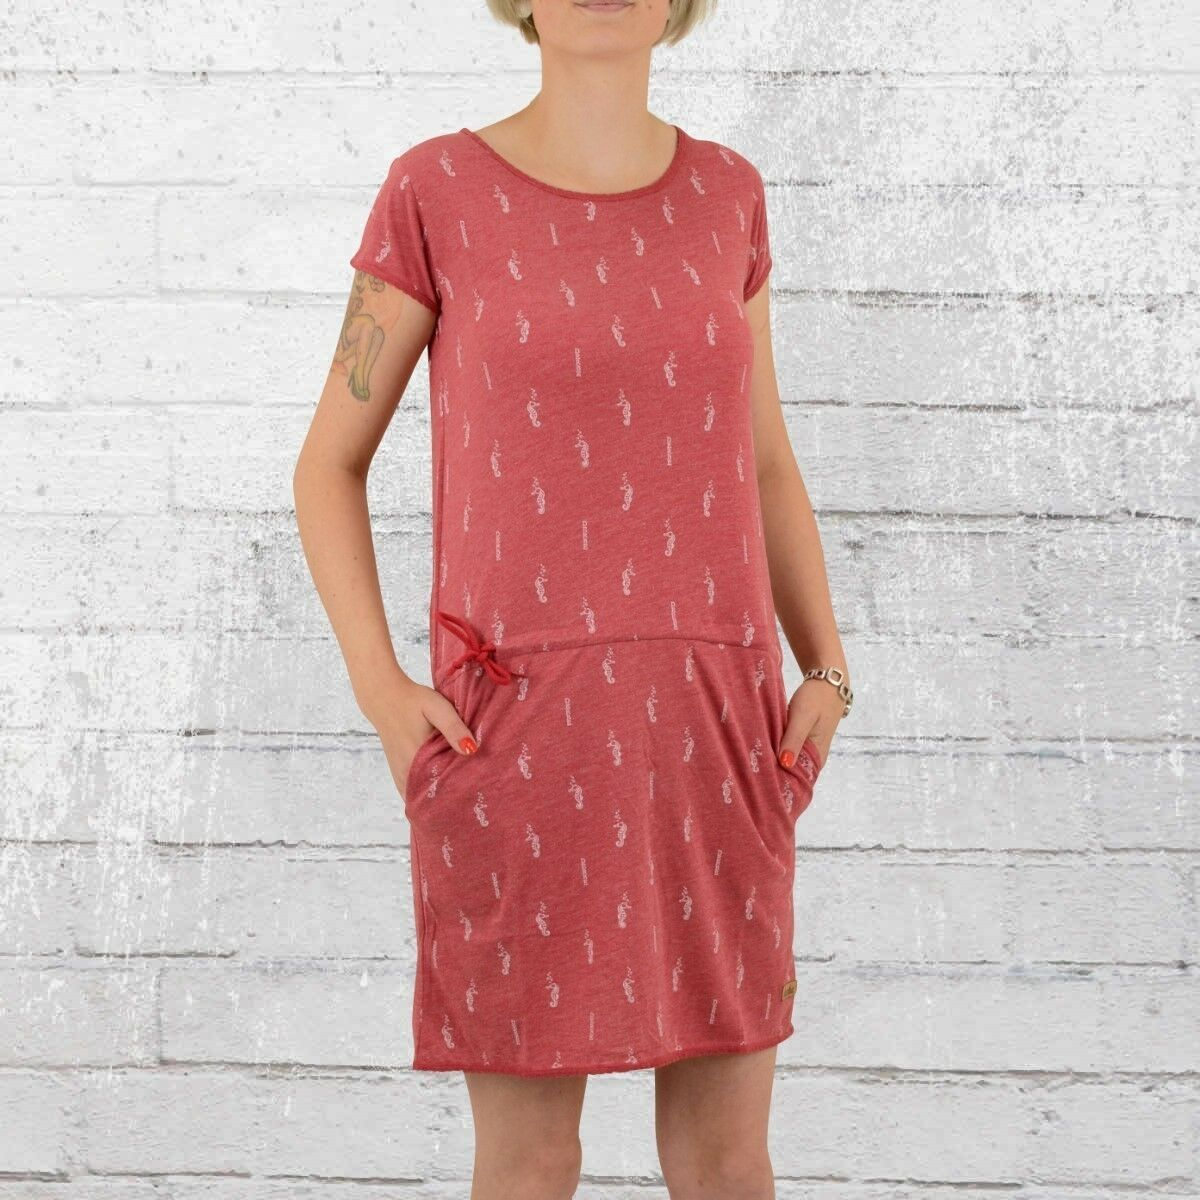 Derbe Hamburg Mini Kleid Seepferdchen rot melange Minikleid Dress Seahorse rot